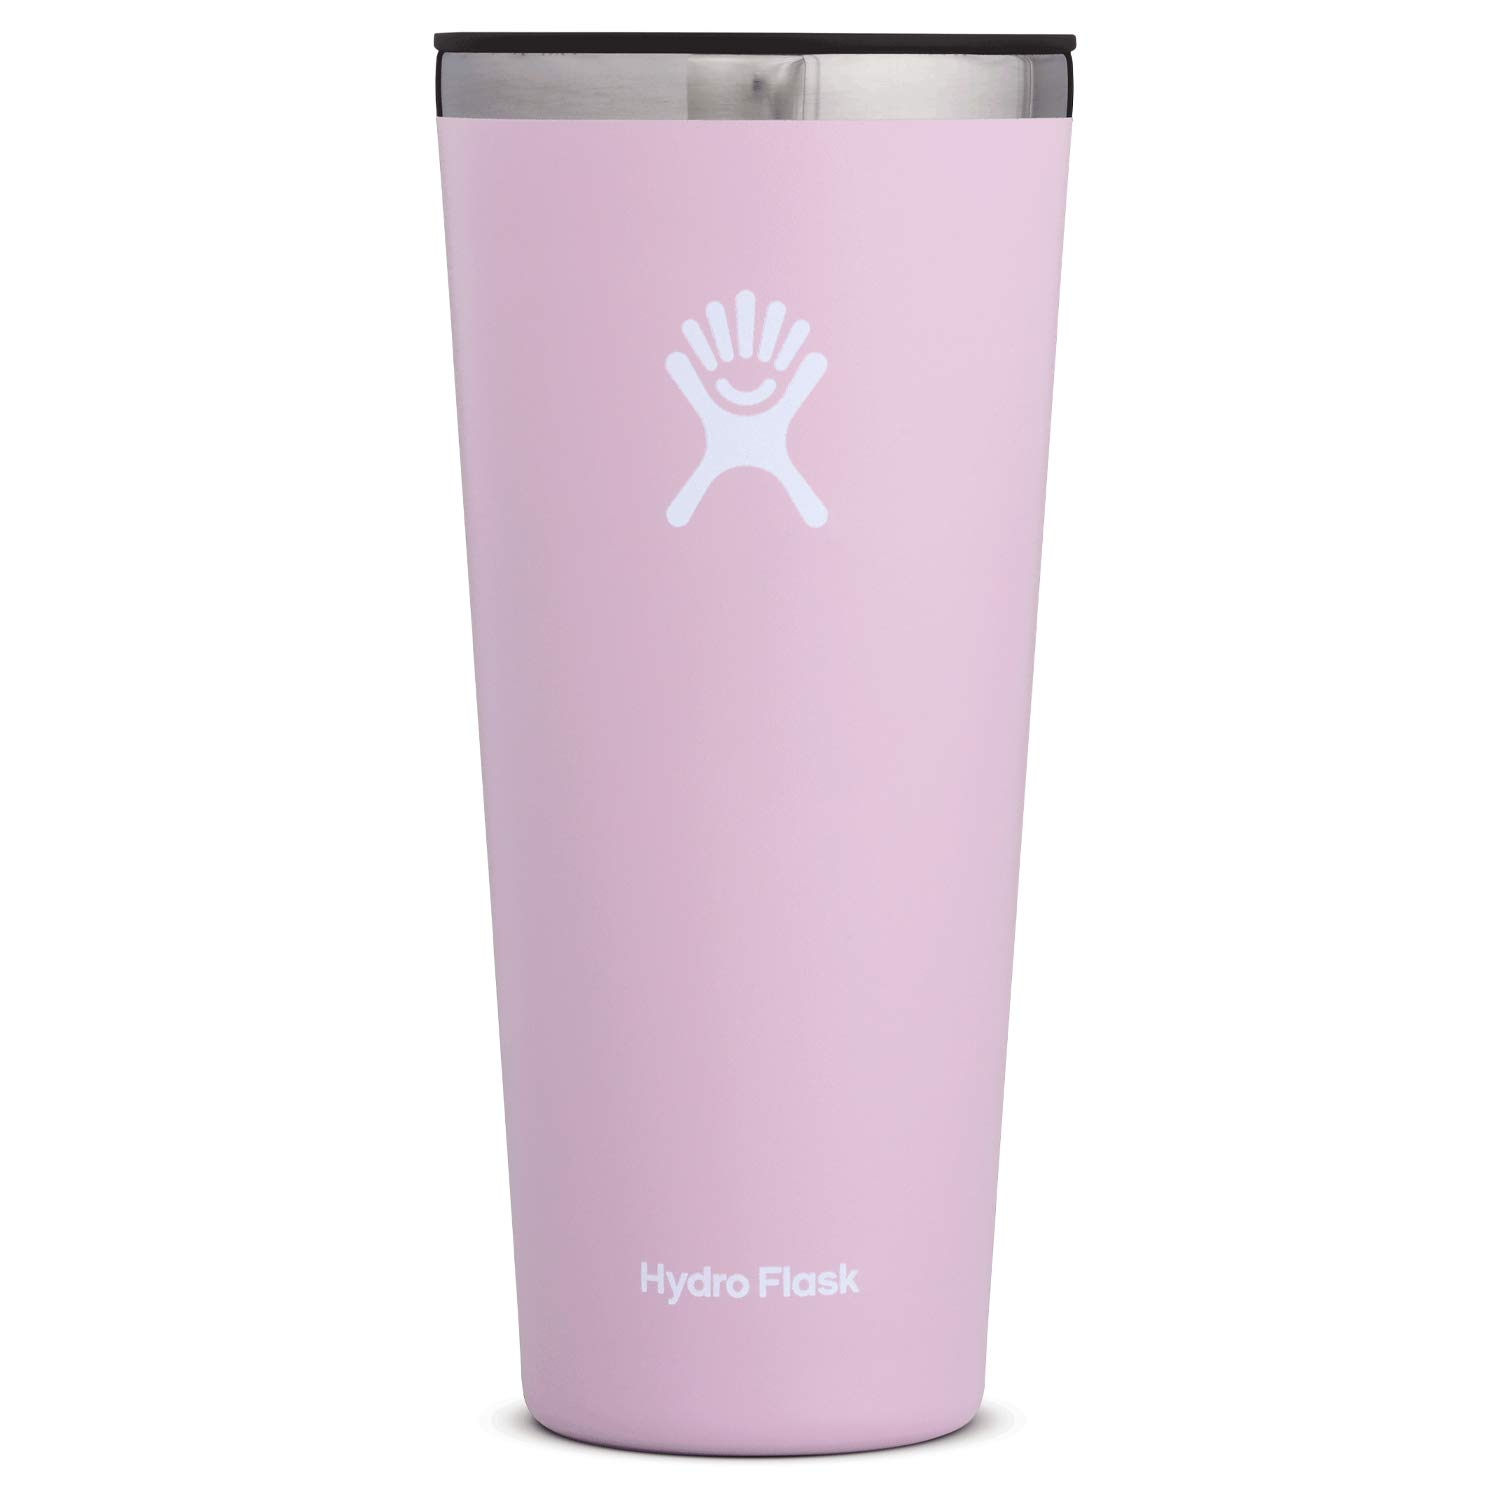 Hydro Flask Tumbler Cup - Stainless Steel & Vacuum Insulated - Press-In Lid - 32 oz, Lilac by Hydro Flask